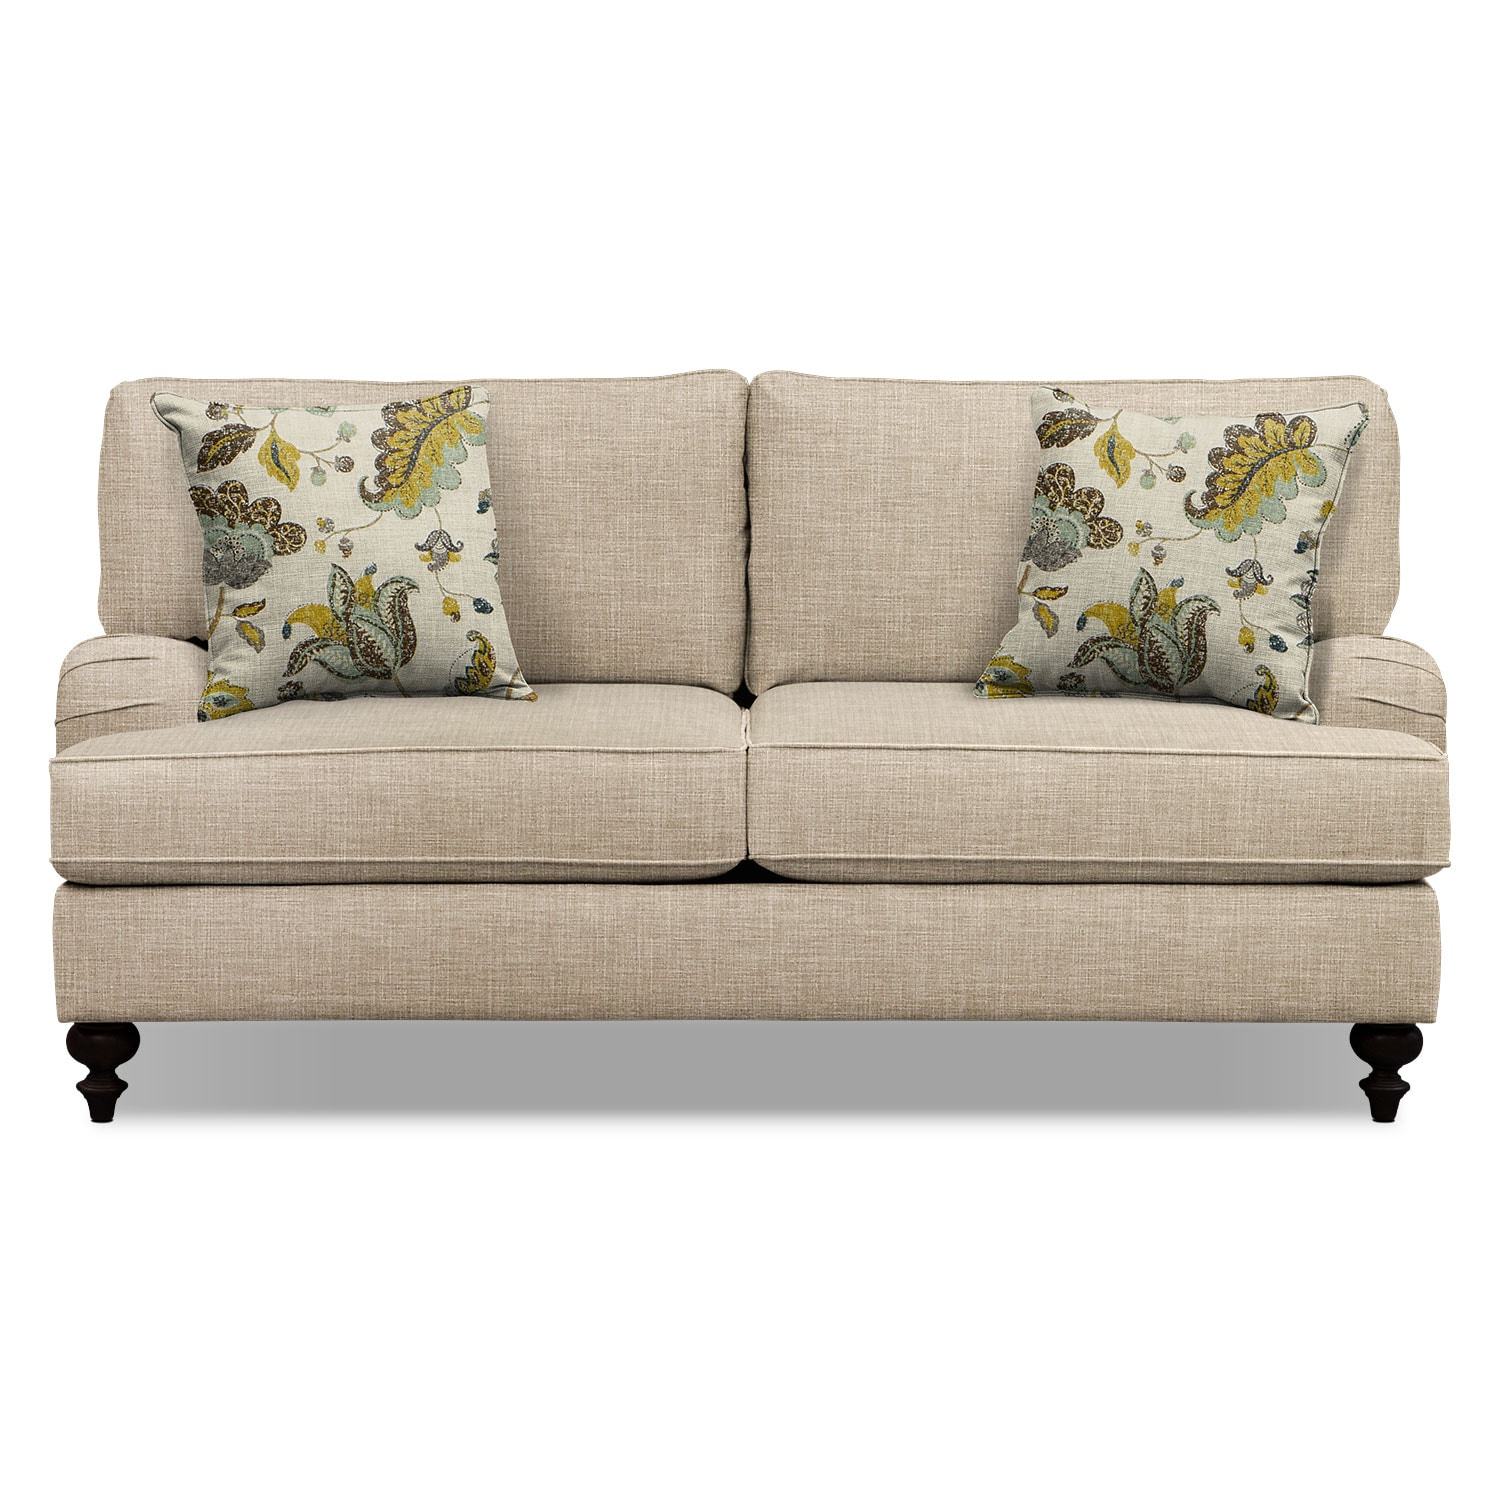 "Living Room Furniture - Avery Taupe 74"" Sofa"